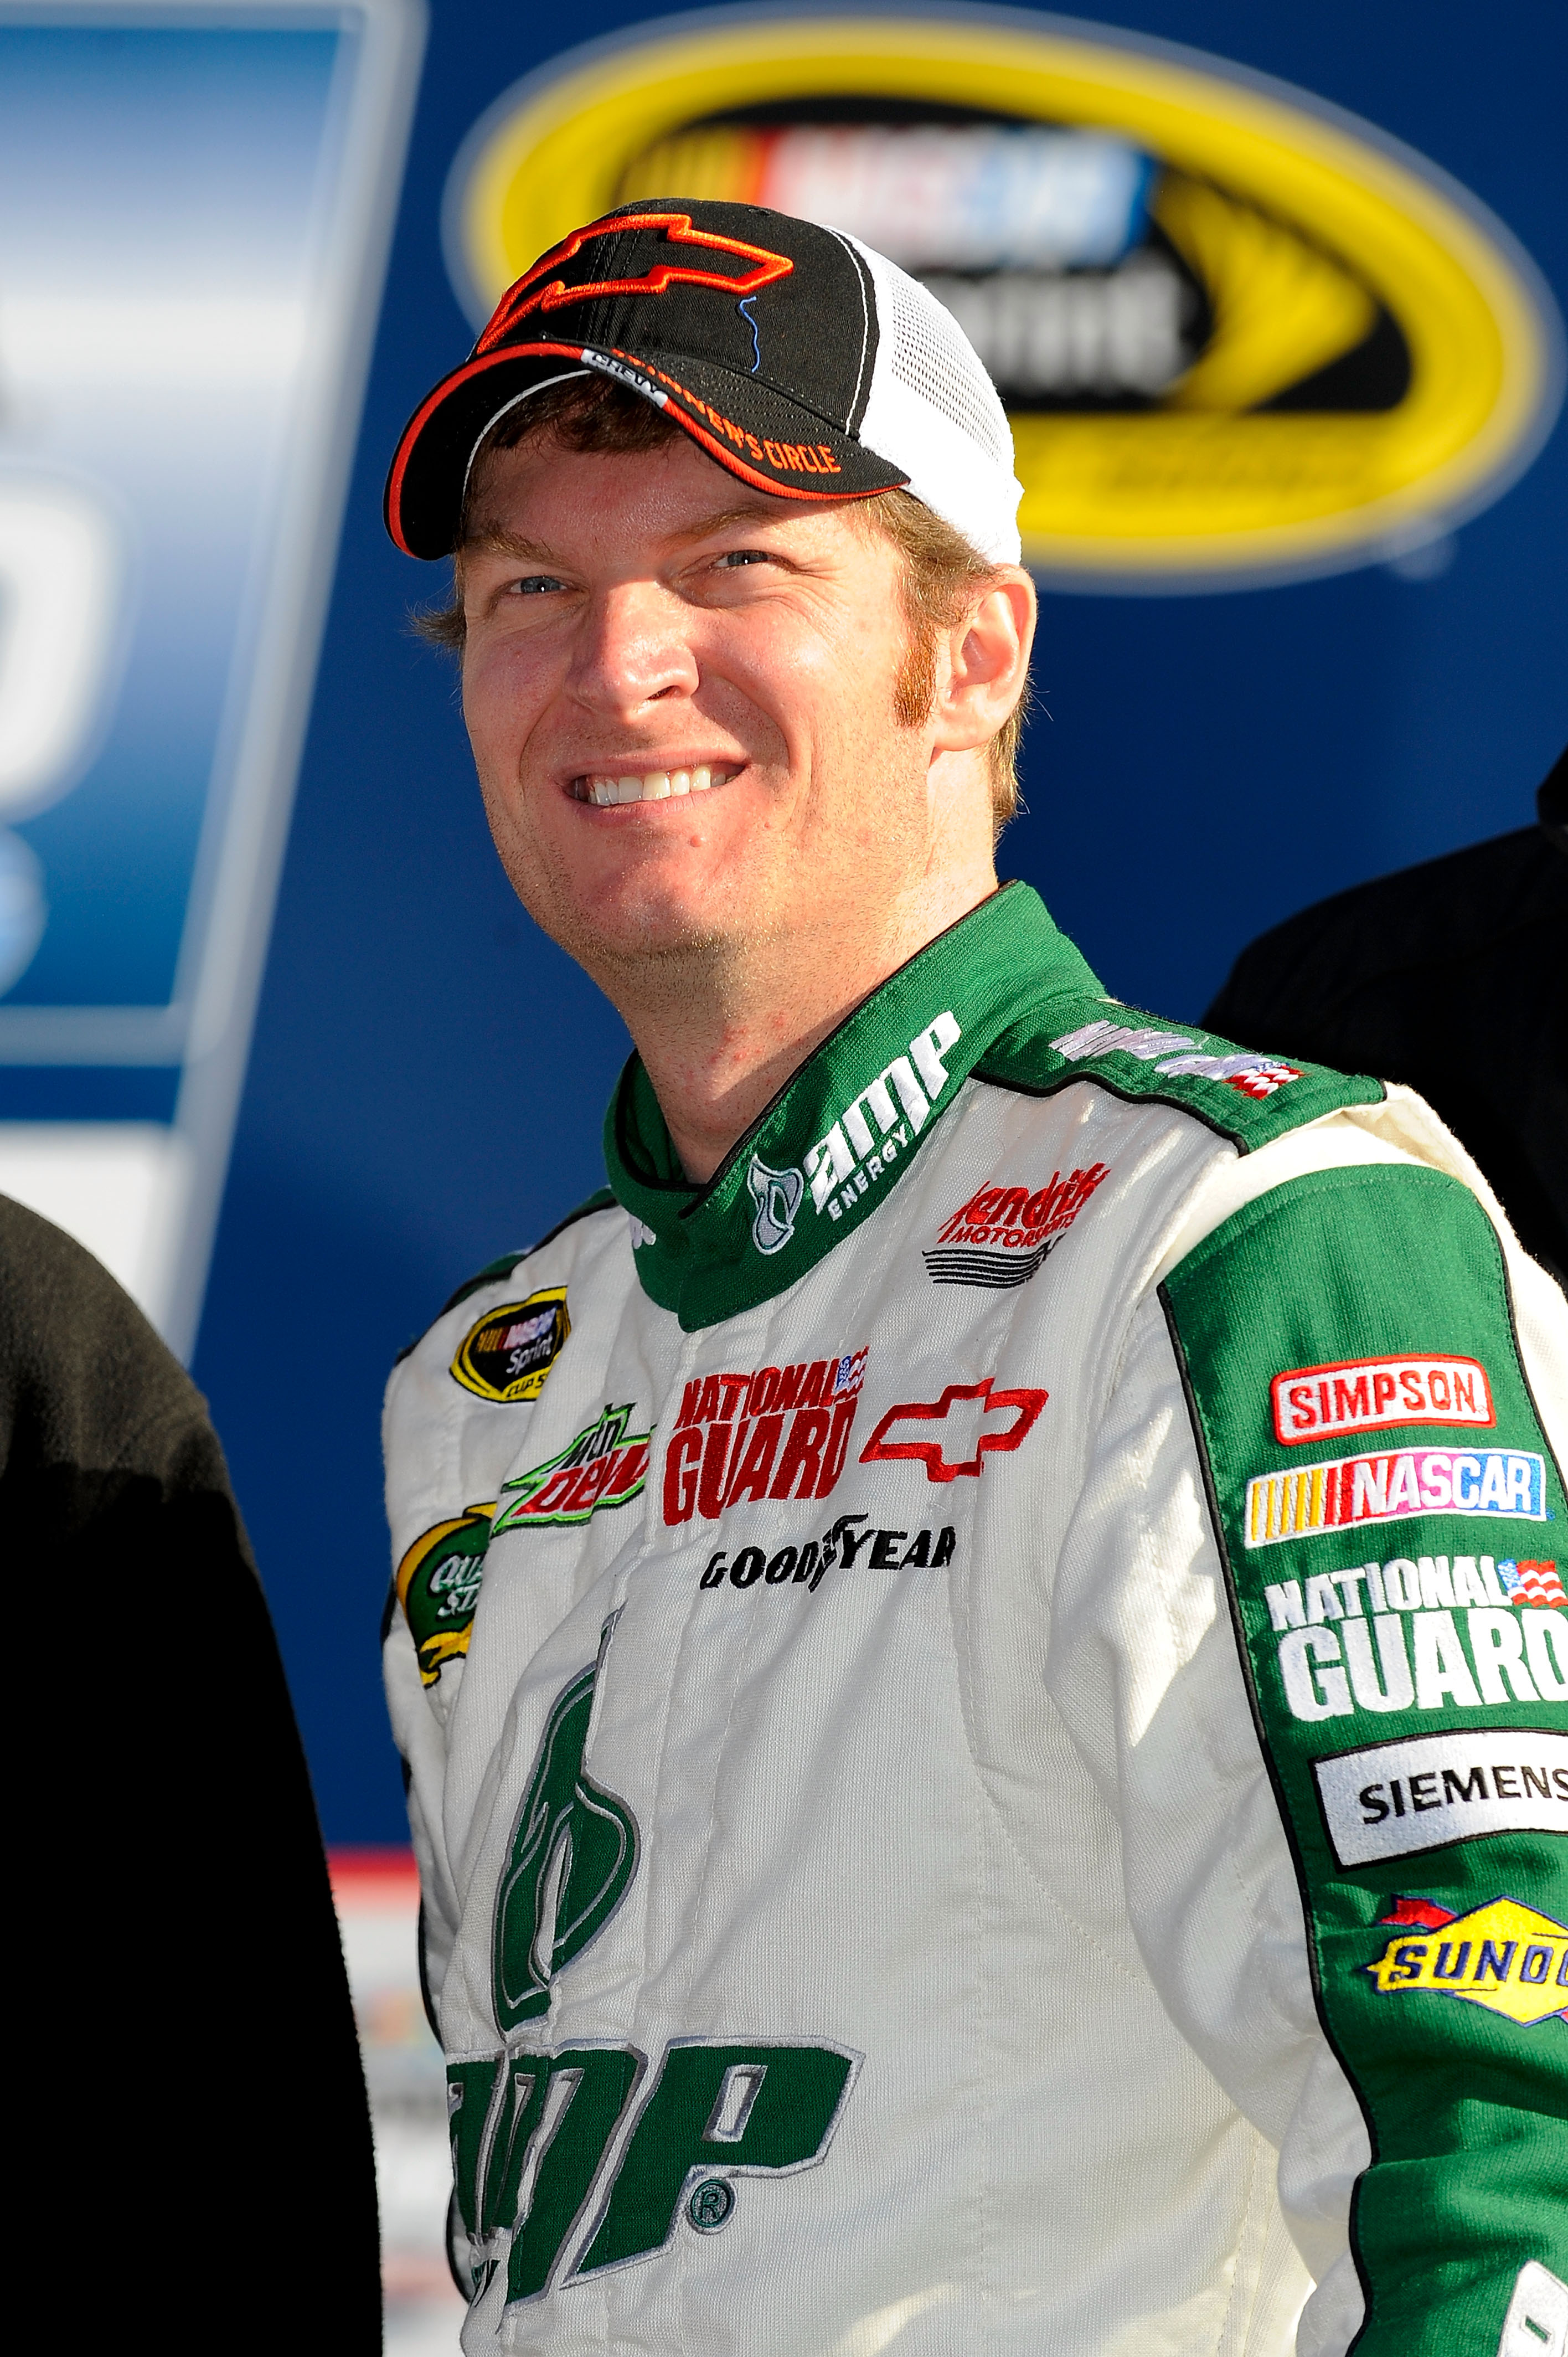 Dale Earnhardt Jr. sits on the pole for this years Daytona 500.